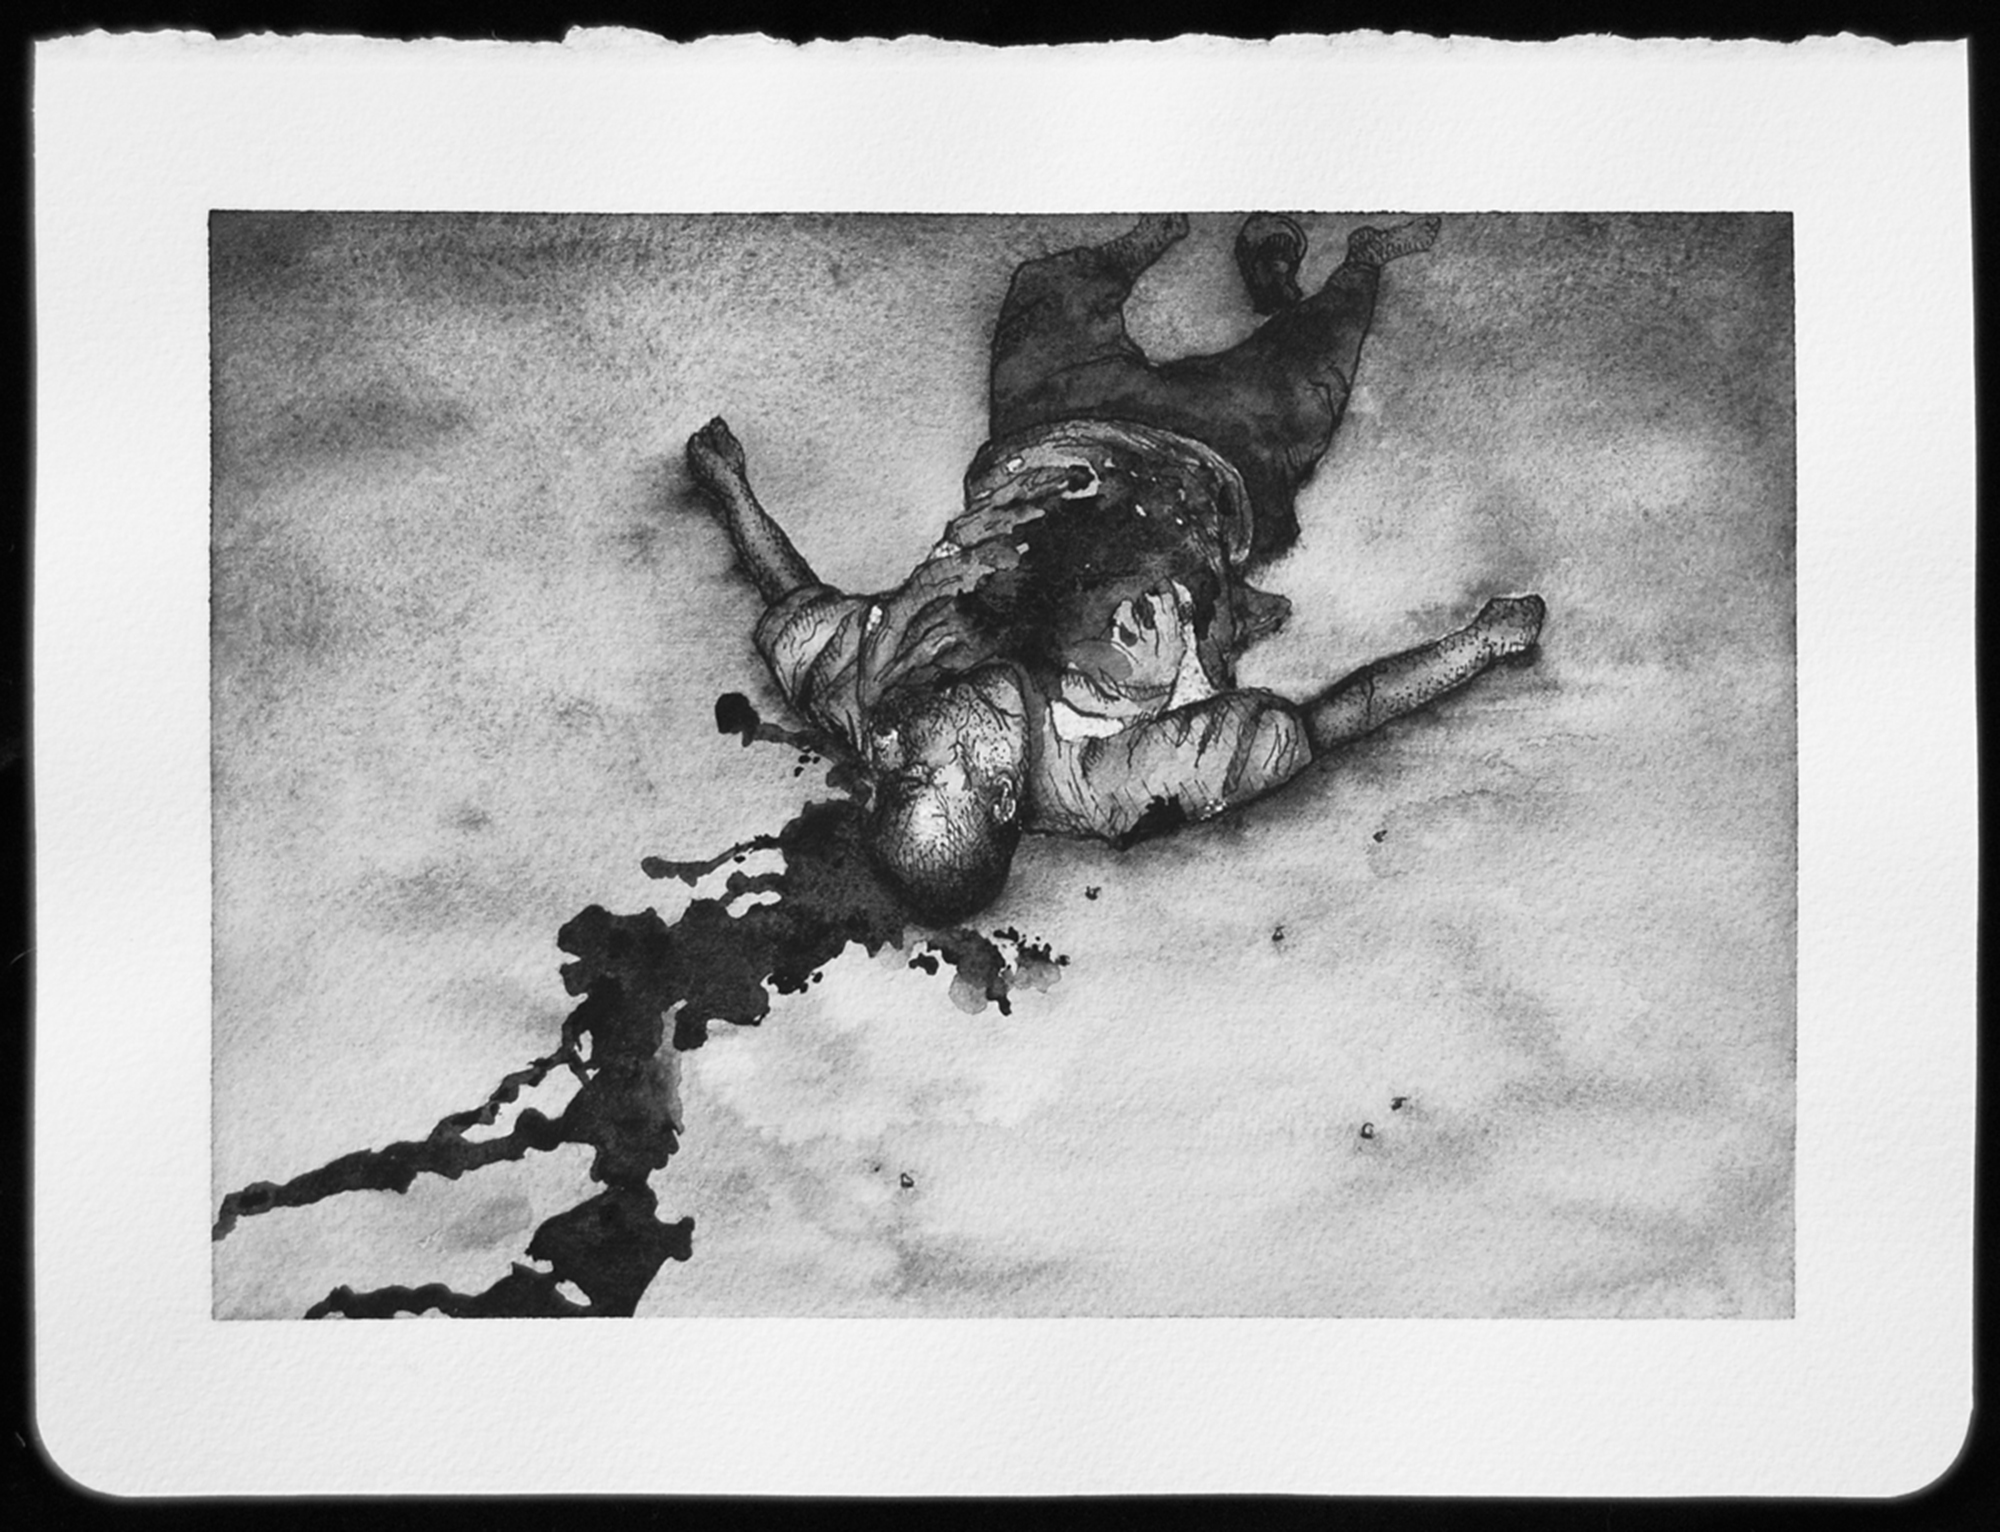 DEATH_044.jpg,2010  |  8.25 x 11 inches  |  archival ink and gouache on paper